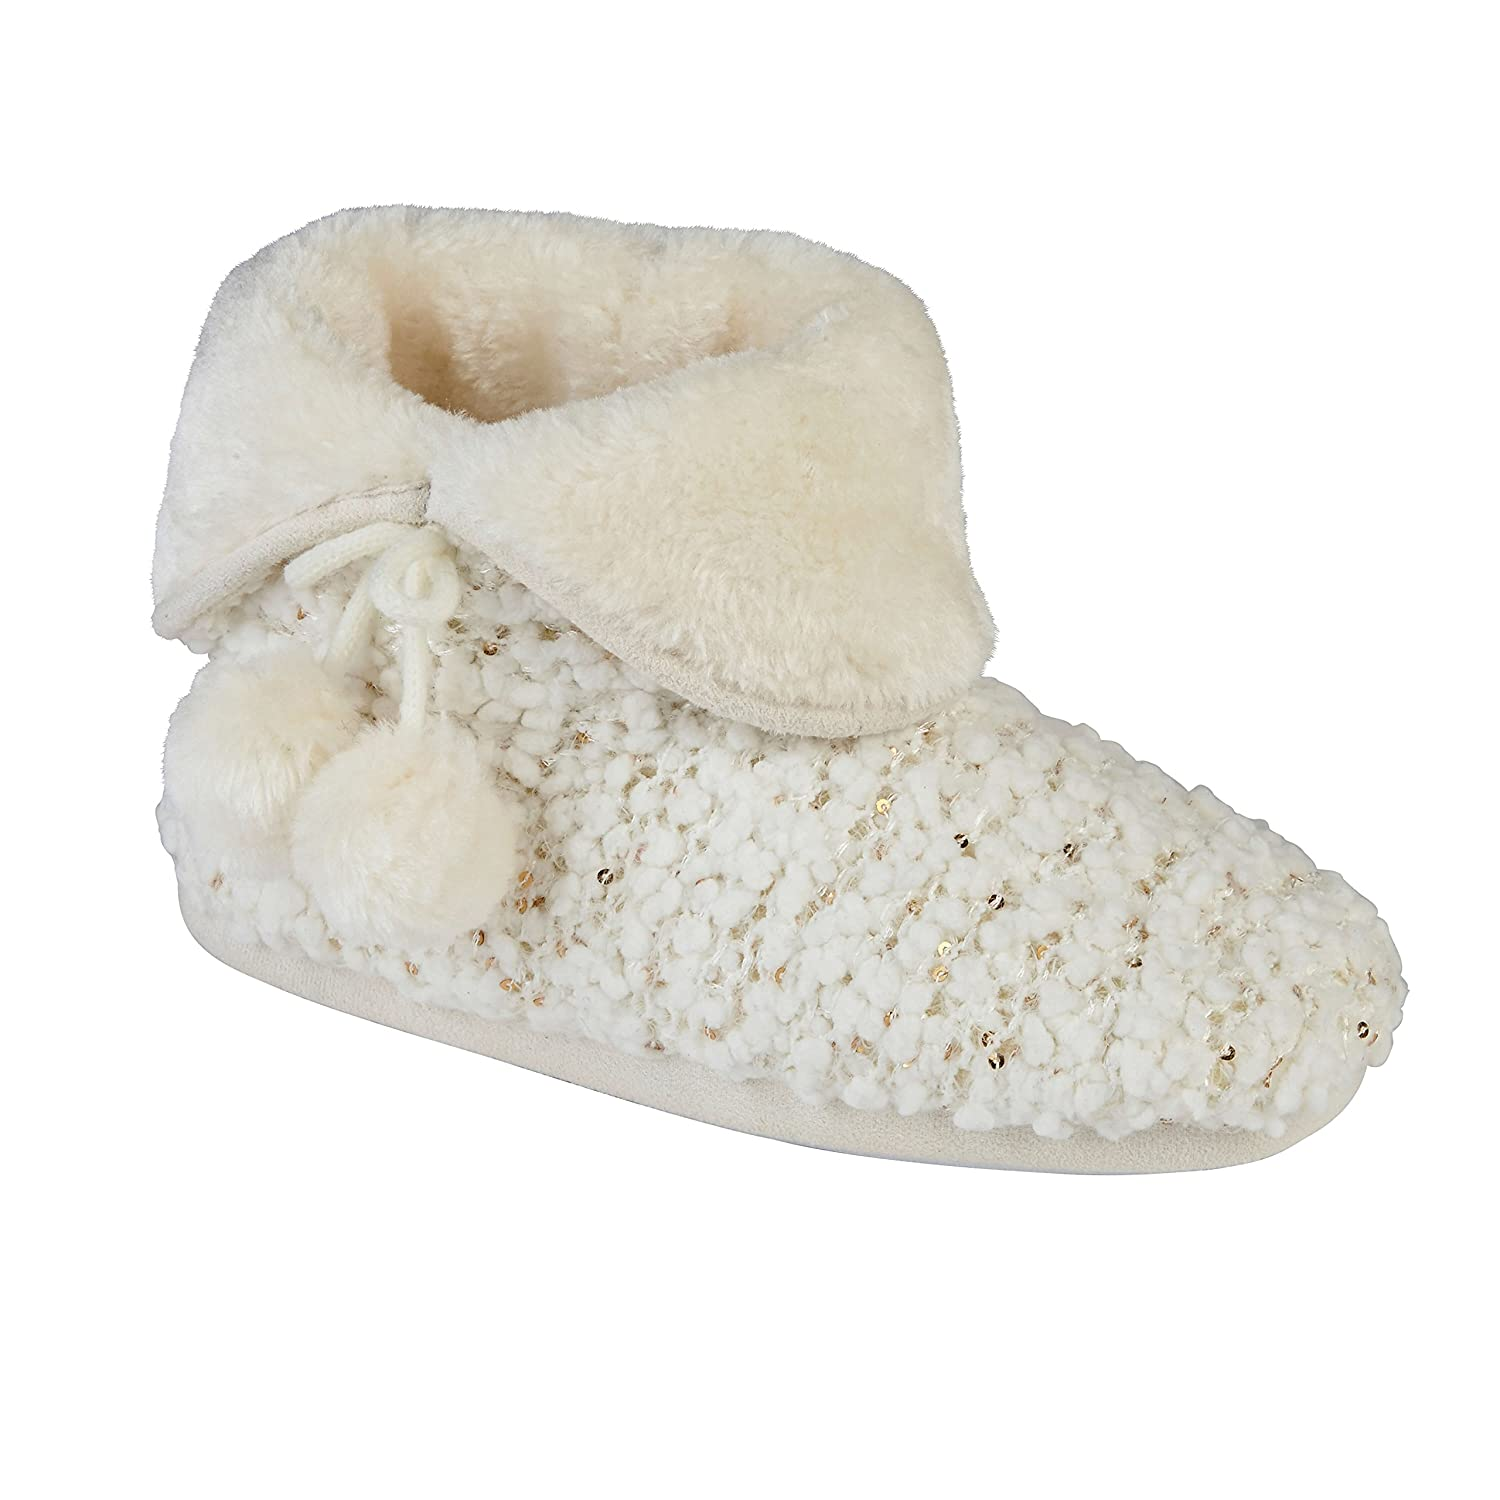 a052baf9bd370 Purdashian New Ladies Soft Faux Fur Lined Warm Slipper Boots Booties:  Amazon.co.uk: Shoes & Bags